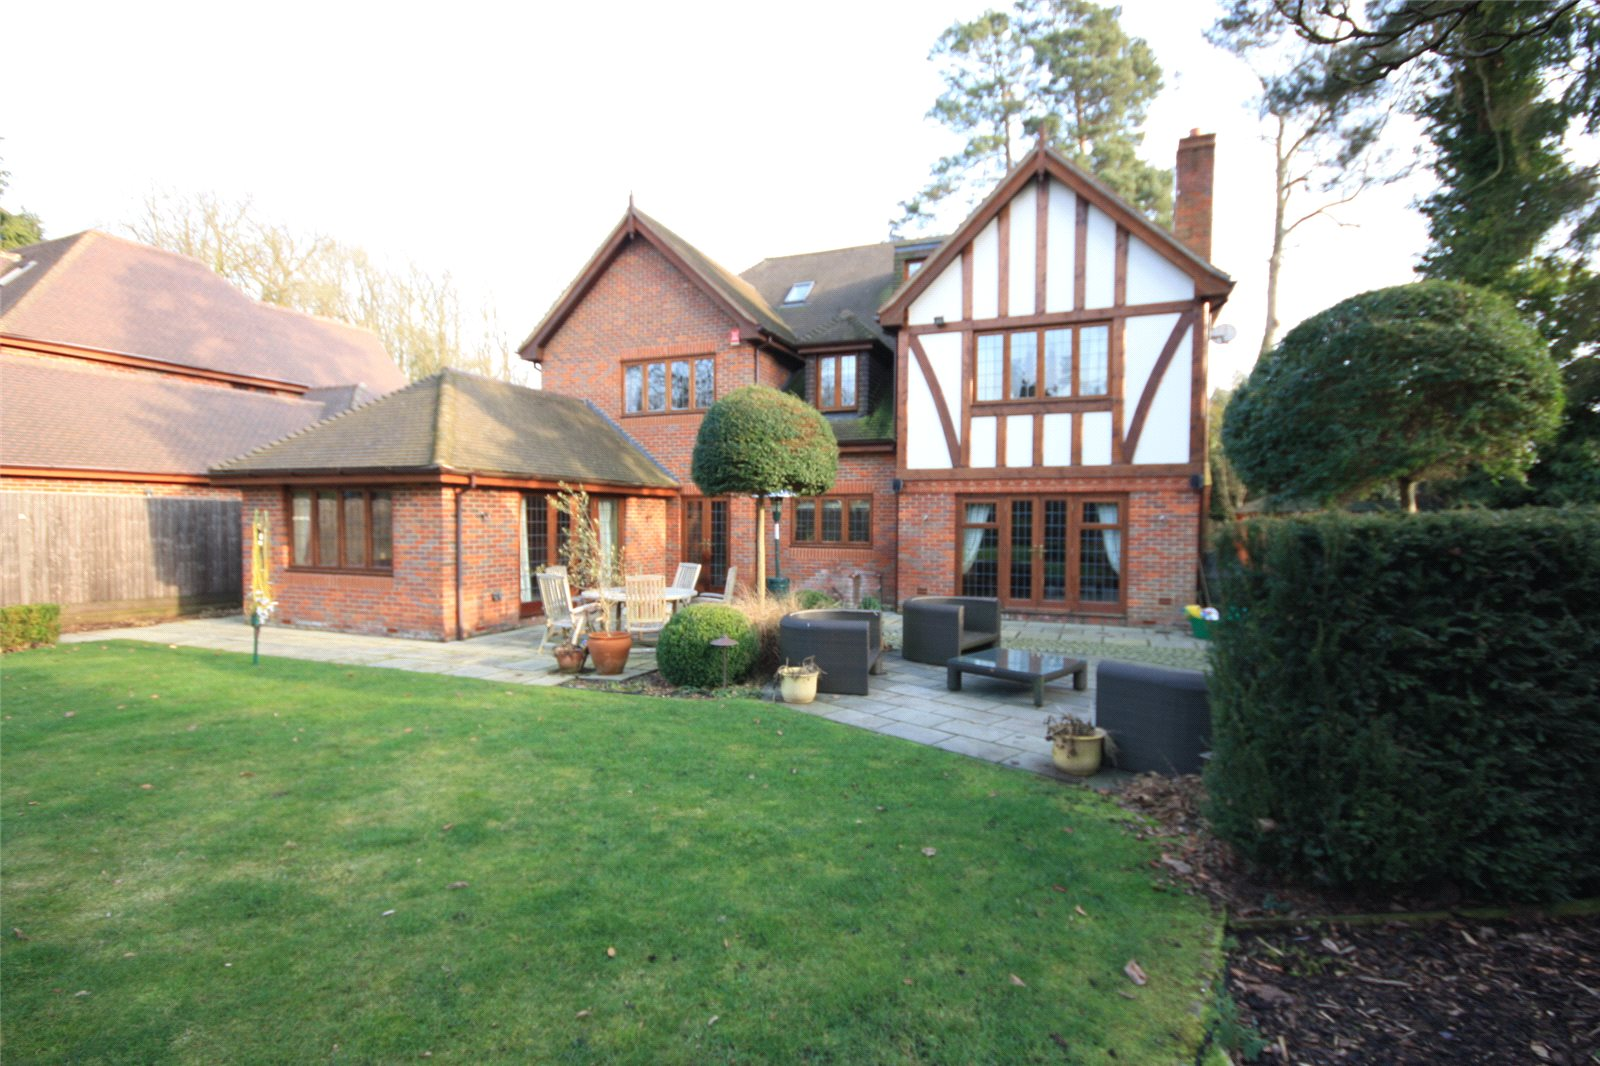 Additional photo for property listing at Deadhearn Lane, Chalfont St Giles, Buckinghamshire, HP8 Chalfont St Giles, Angleterre